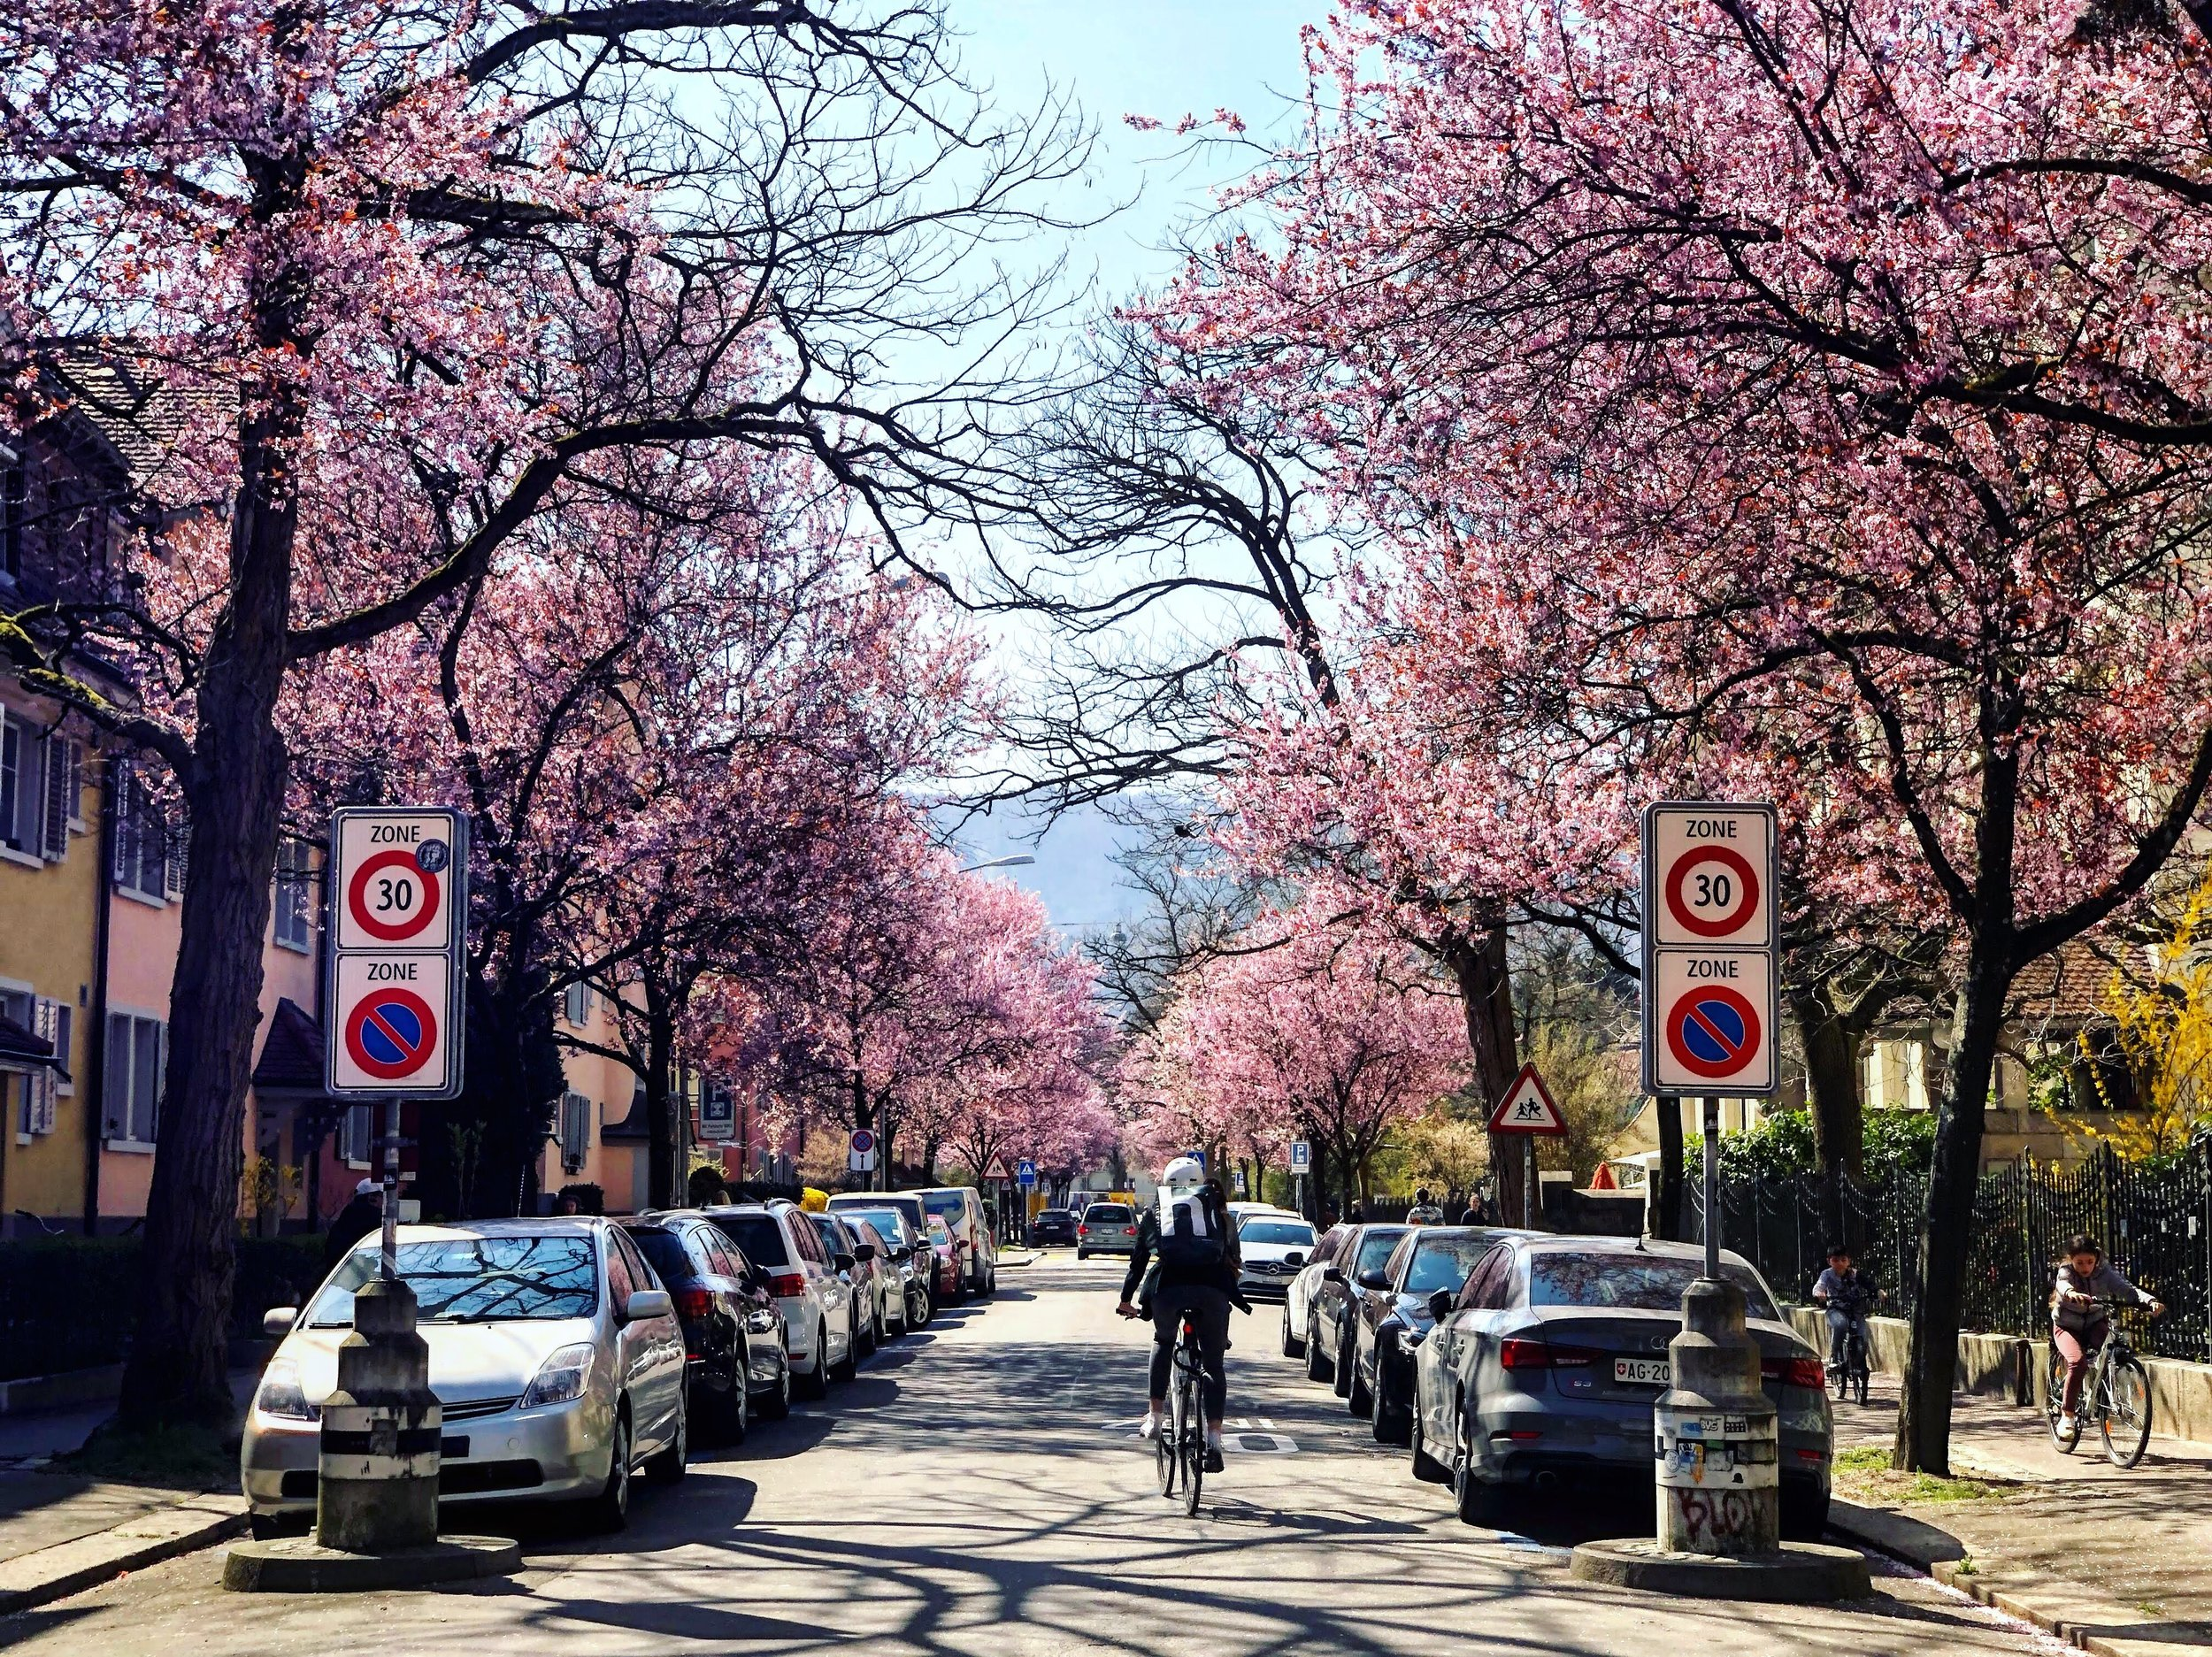 Cherry blossoms in Kreis 4 in the spring in Zurich.jpg